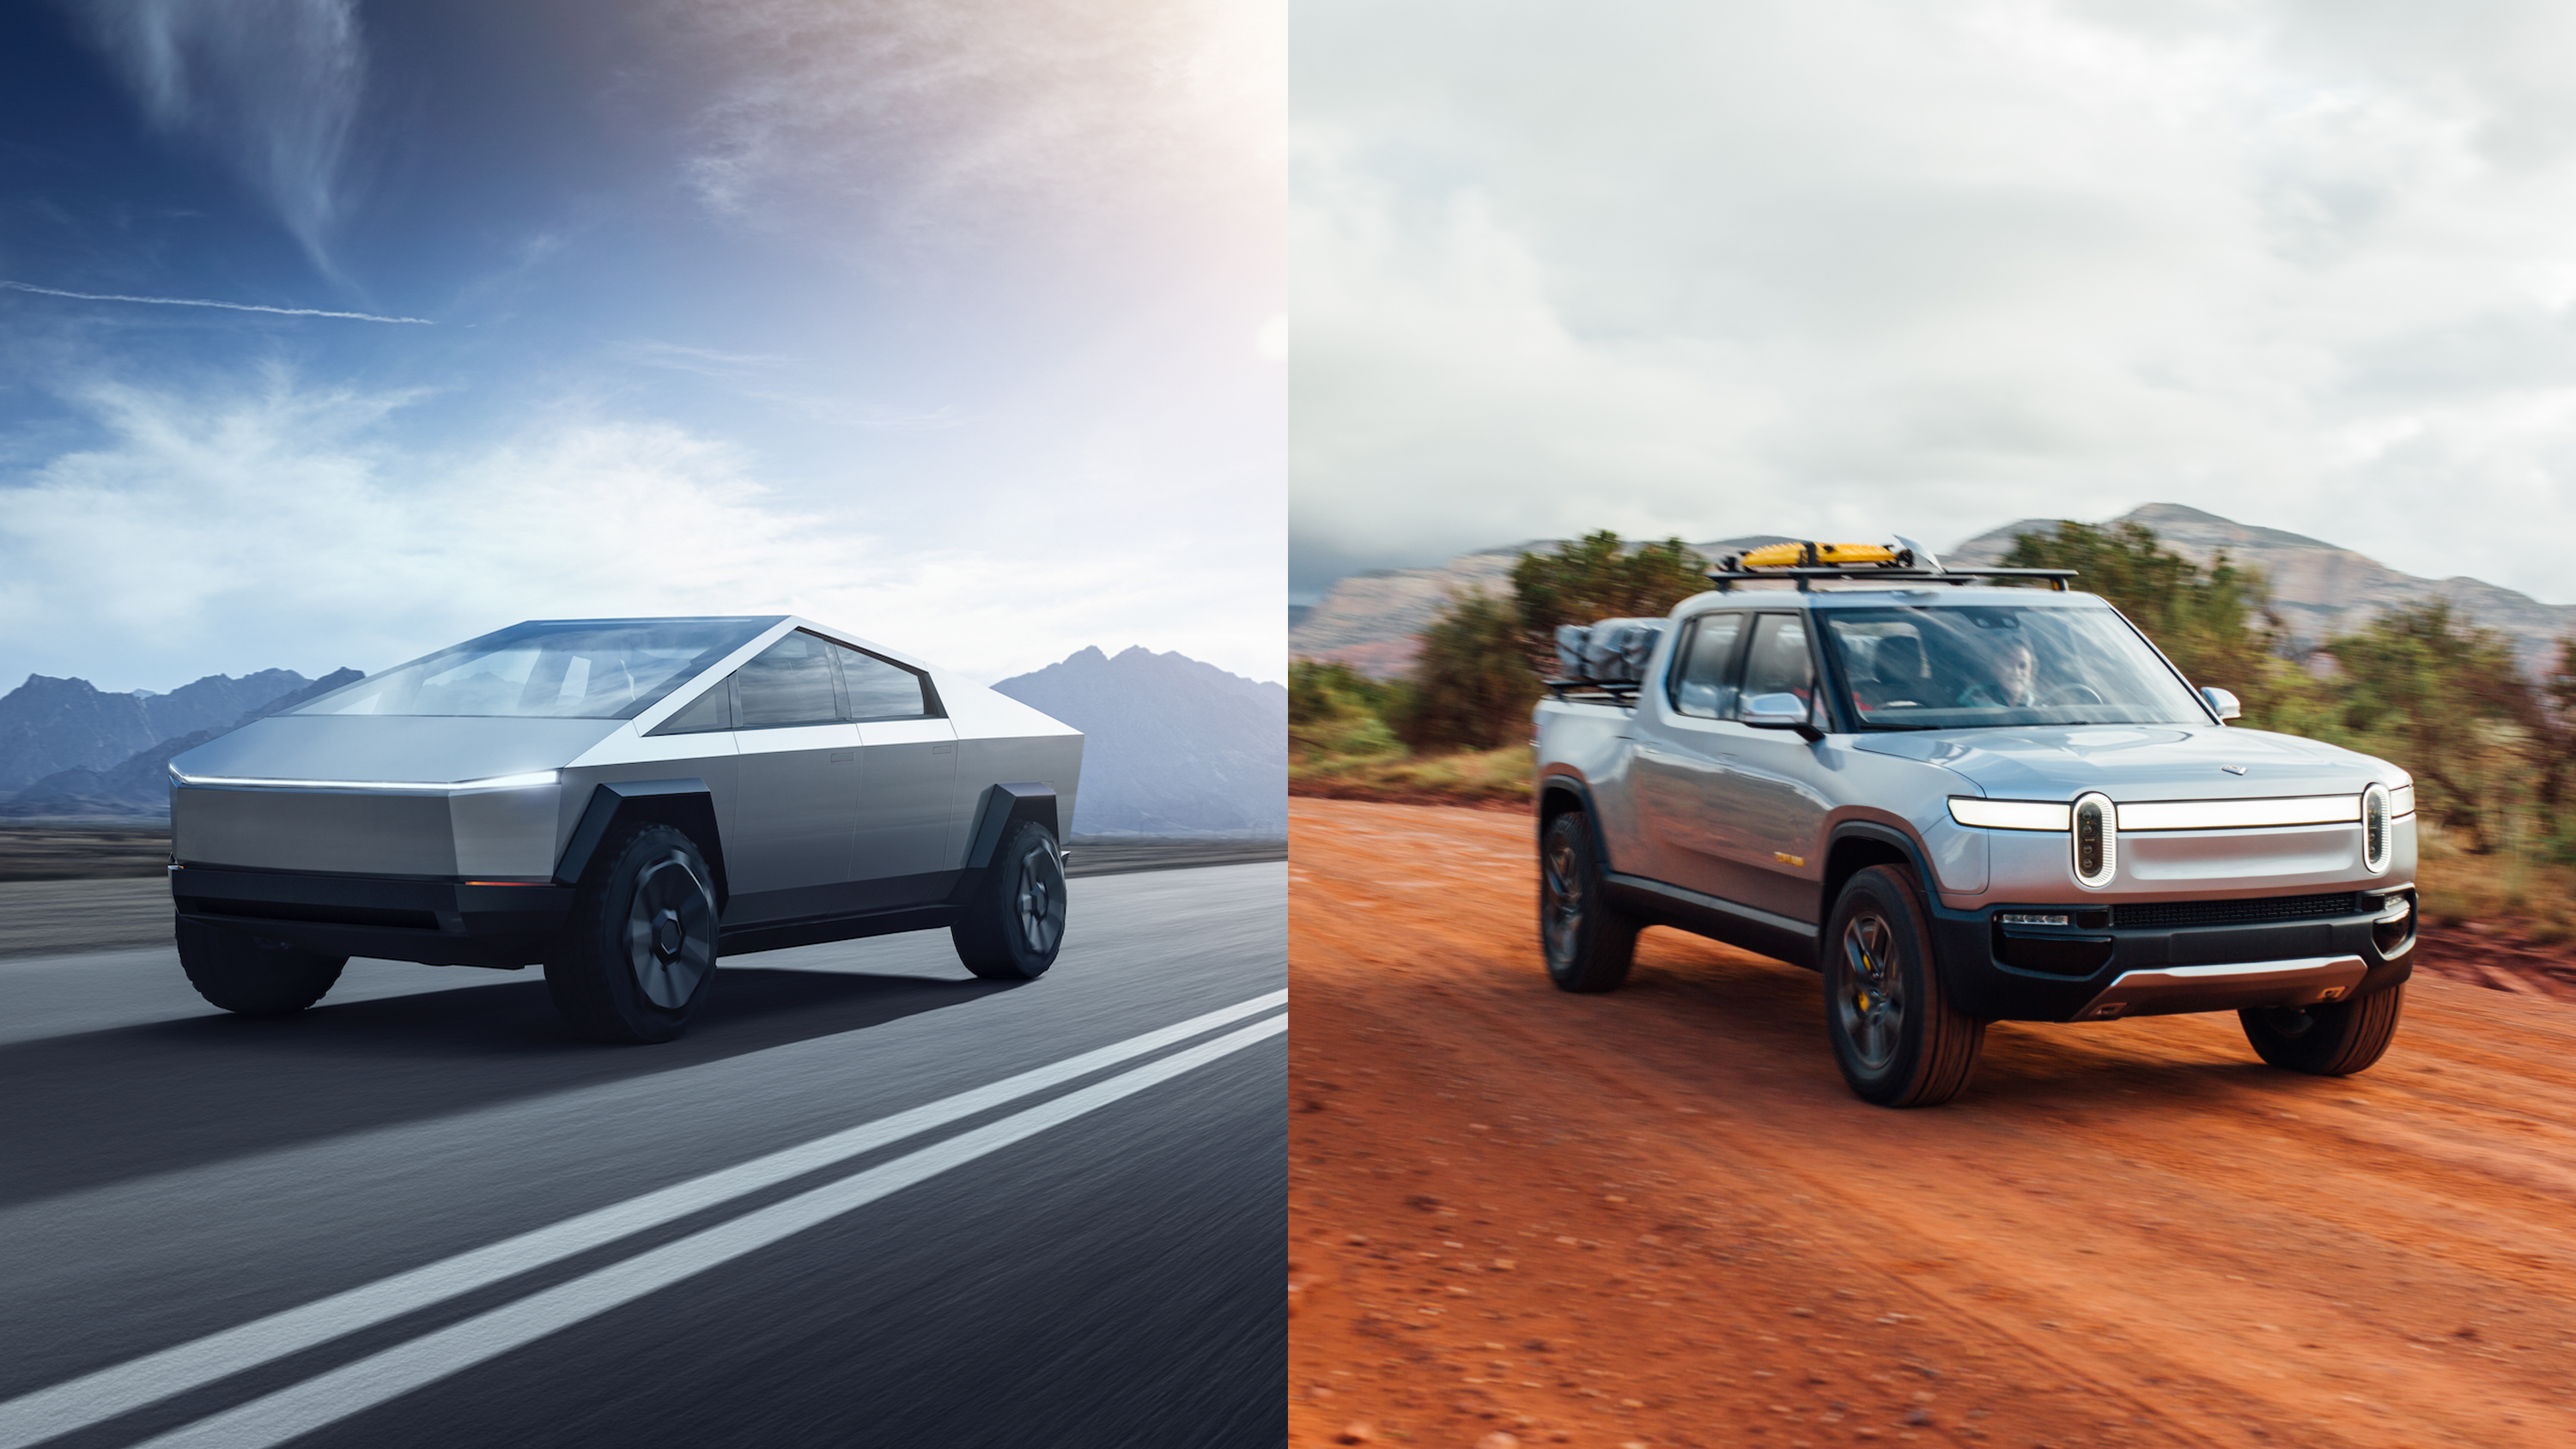 Rivian's New Electric Truck is Like a Tank - When Turning